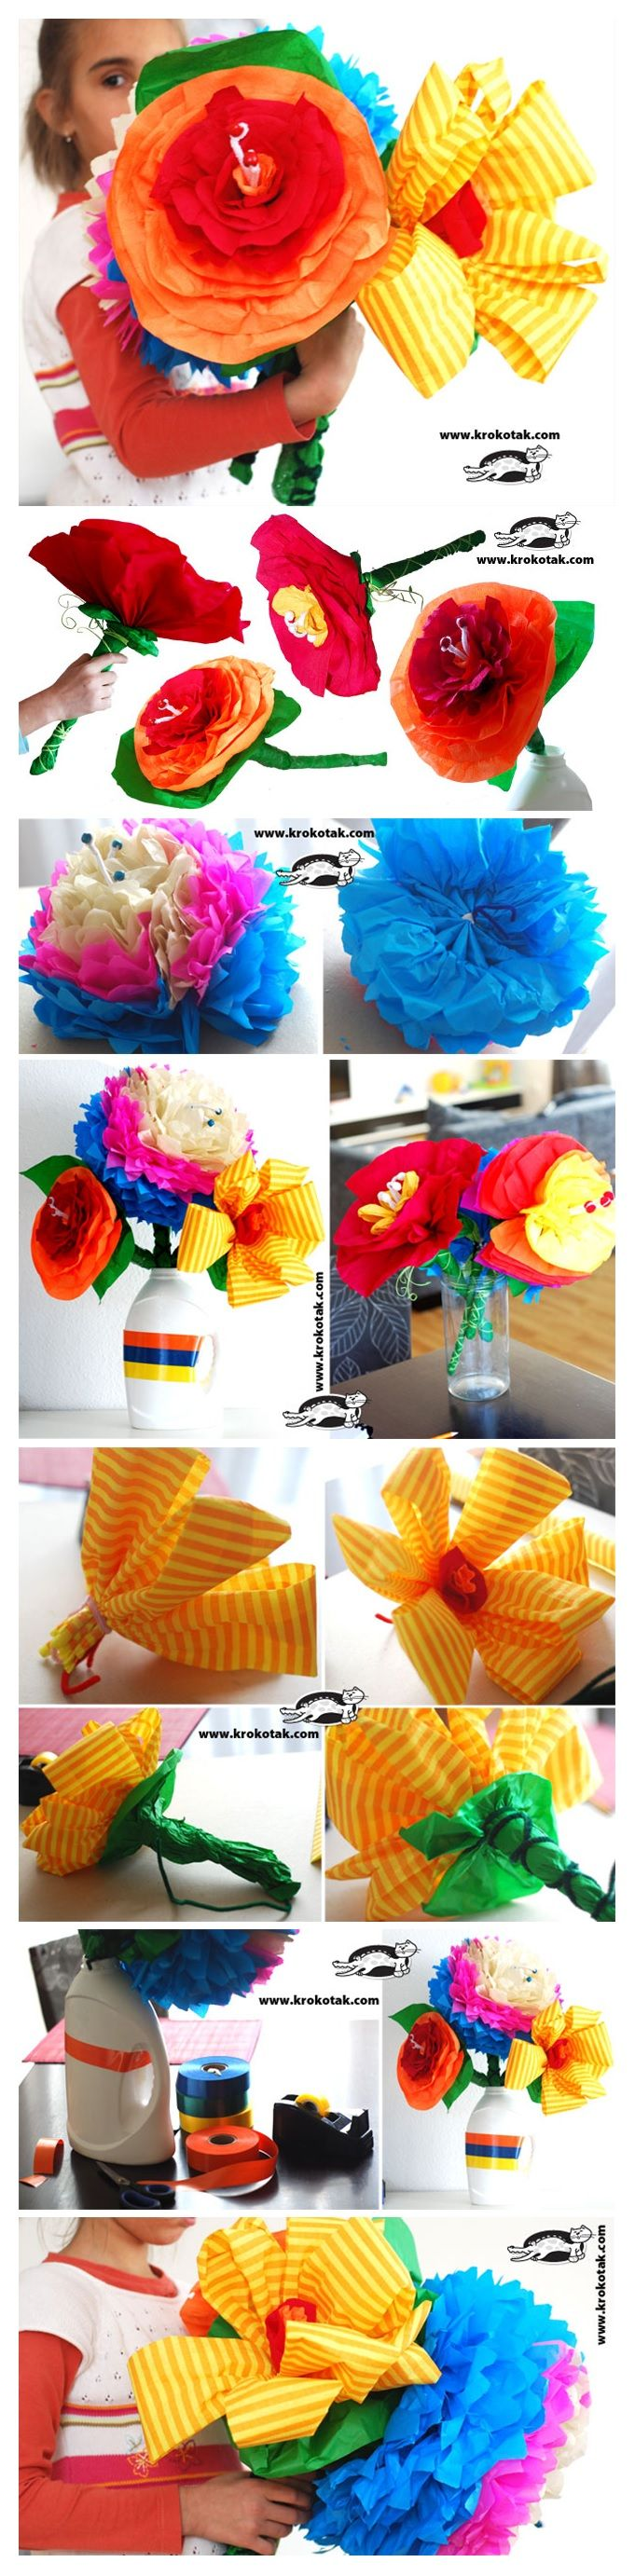 Need to make some for carrying in day of the dead procession need to make some for carrying in day of the dead procession mexican style weddingdia de los muertos pinterest craft flowers and birthdays mightylinksfo